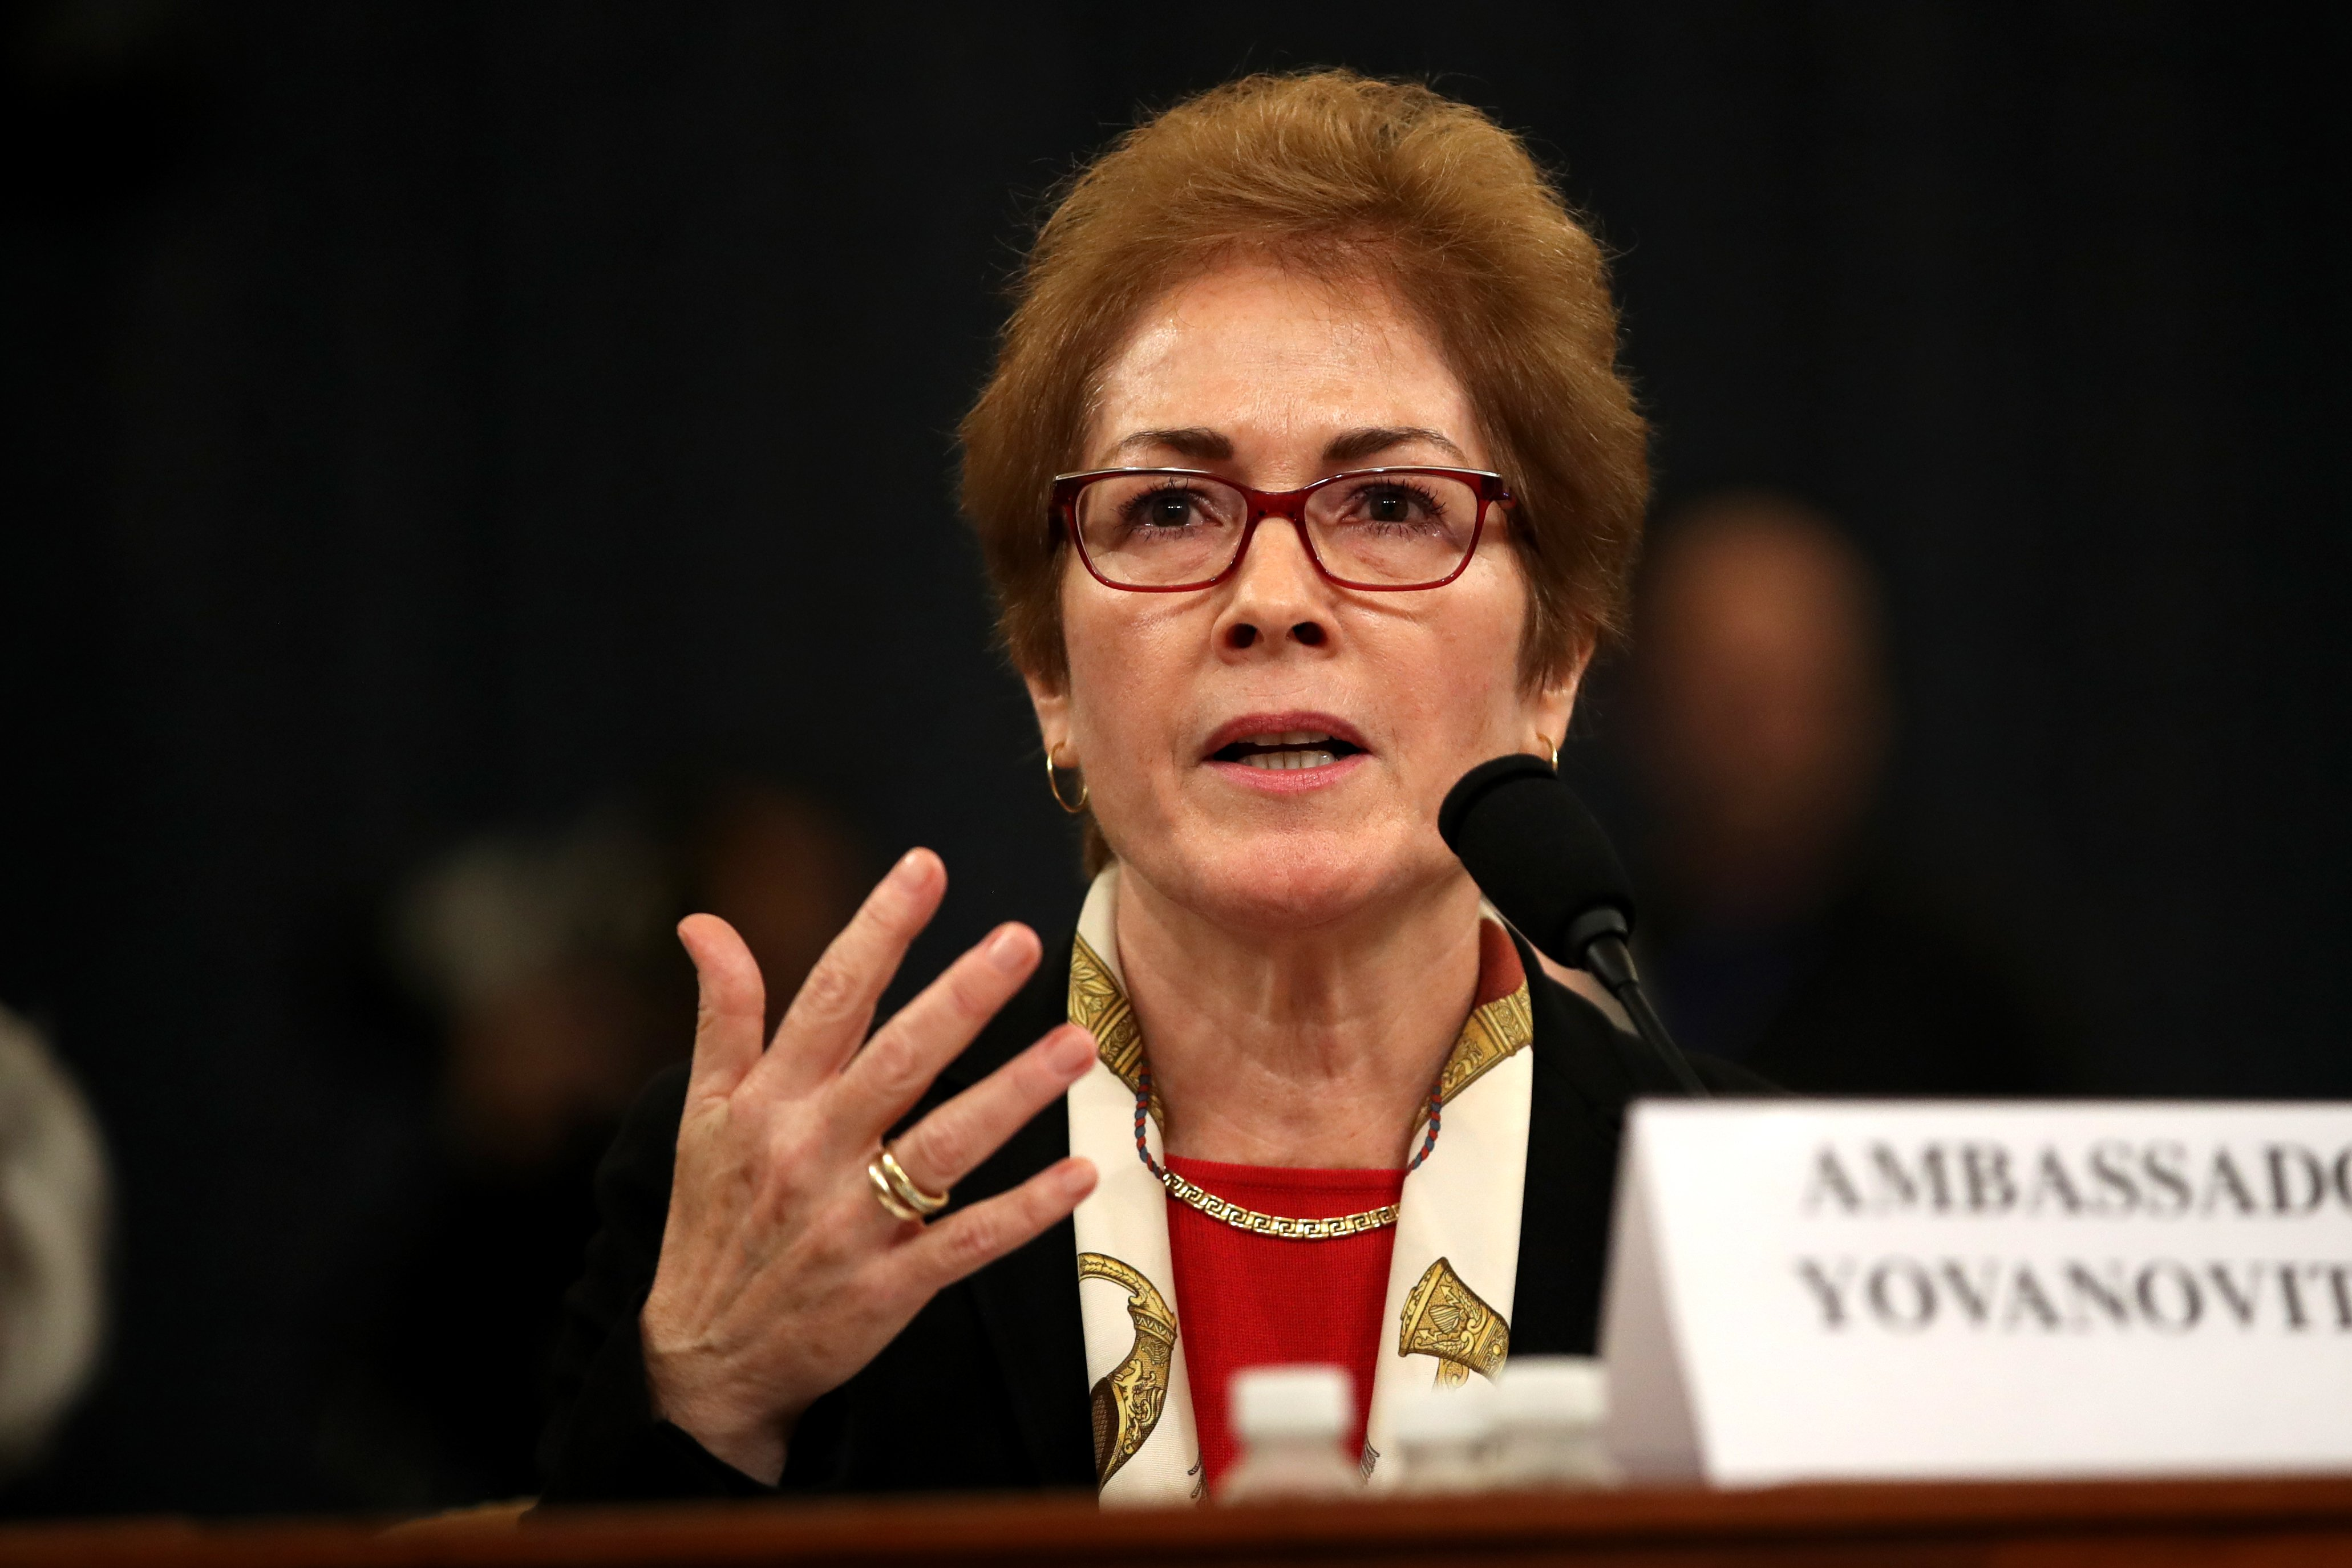 Former U.S. Ambassador to Ukraine Marie Yovanovitch testifies before the House Intelligence Committee in the Longworth House Office Building Nov. 15, 2019. (Drew Angerer/Getty Images)